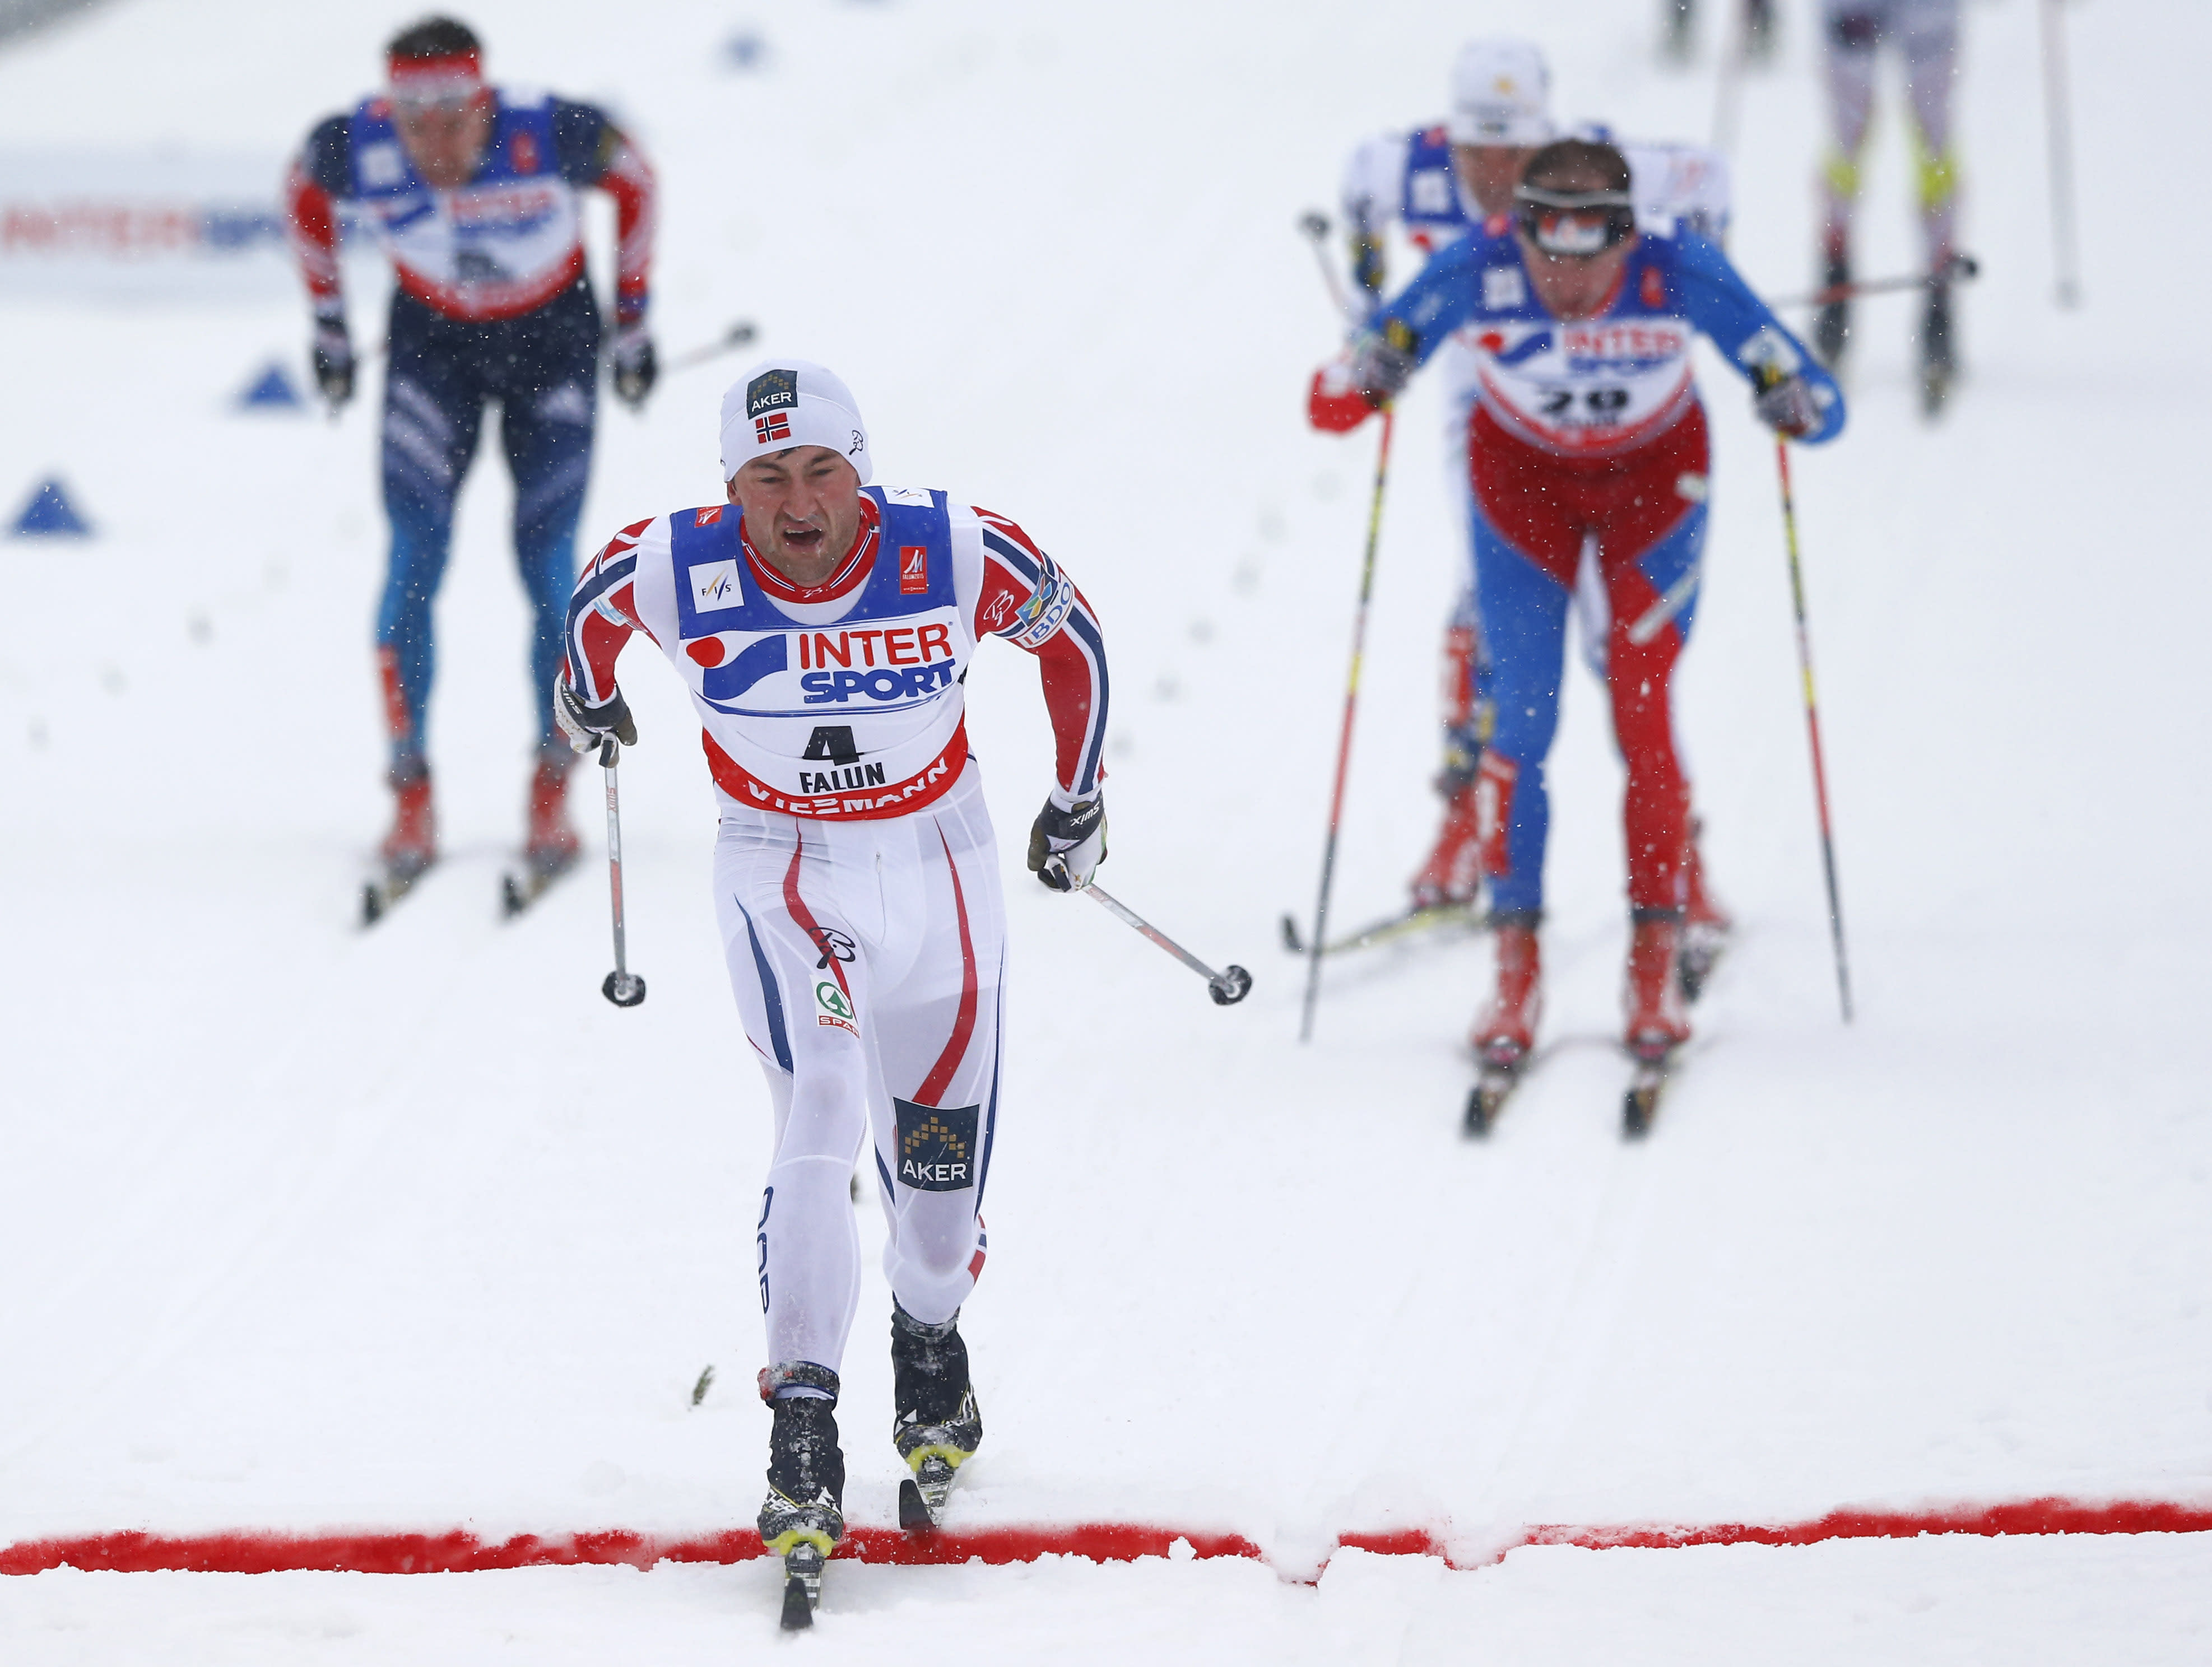 Northug wins 50K race for 4th gold of Nordic skiing worlds